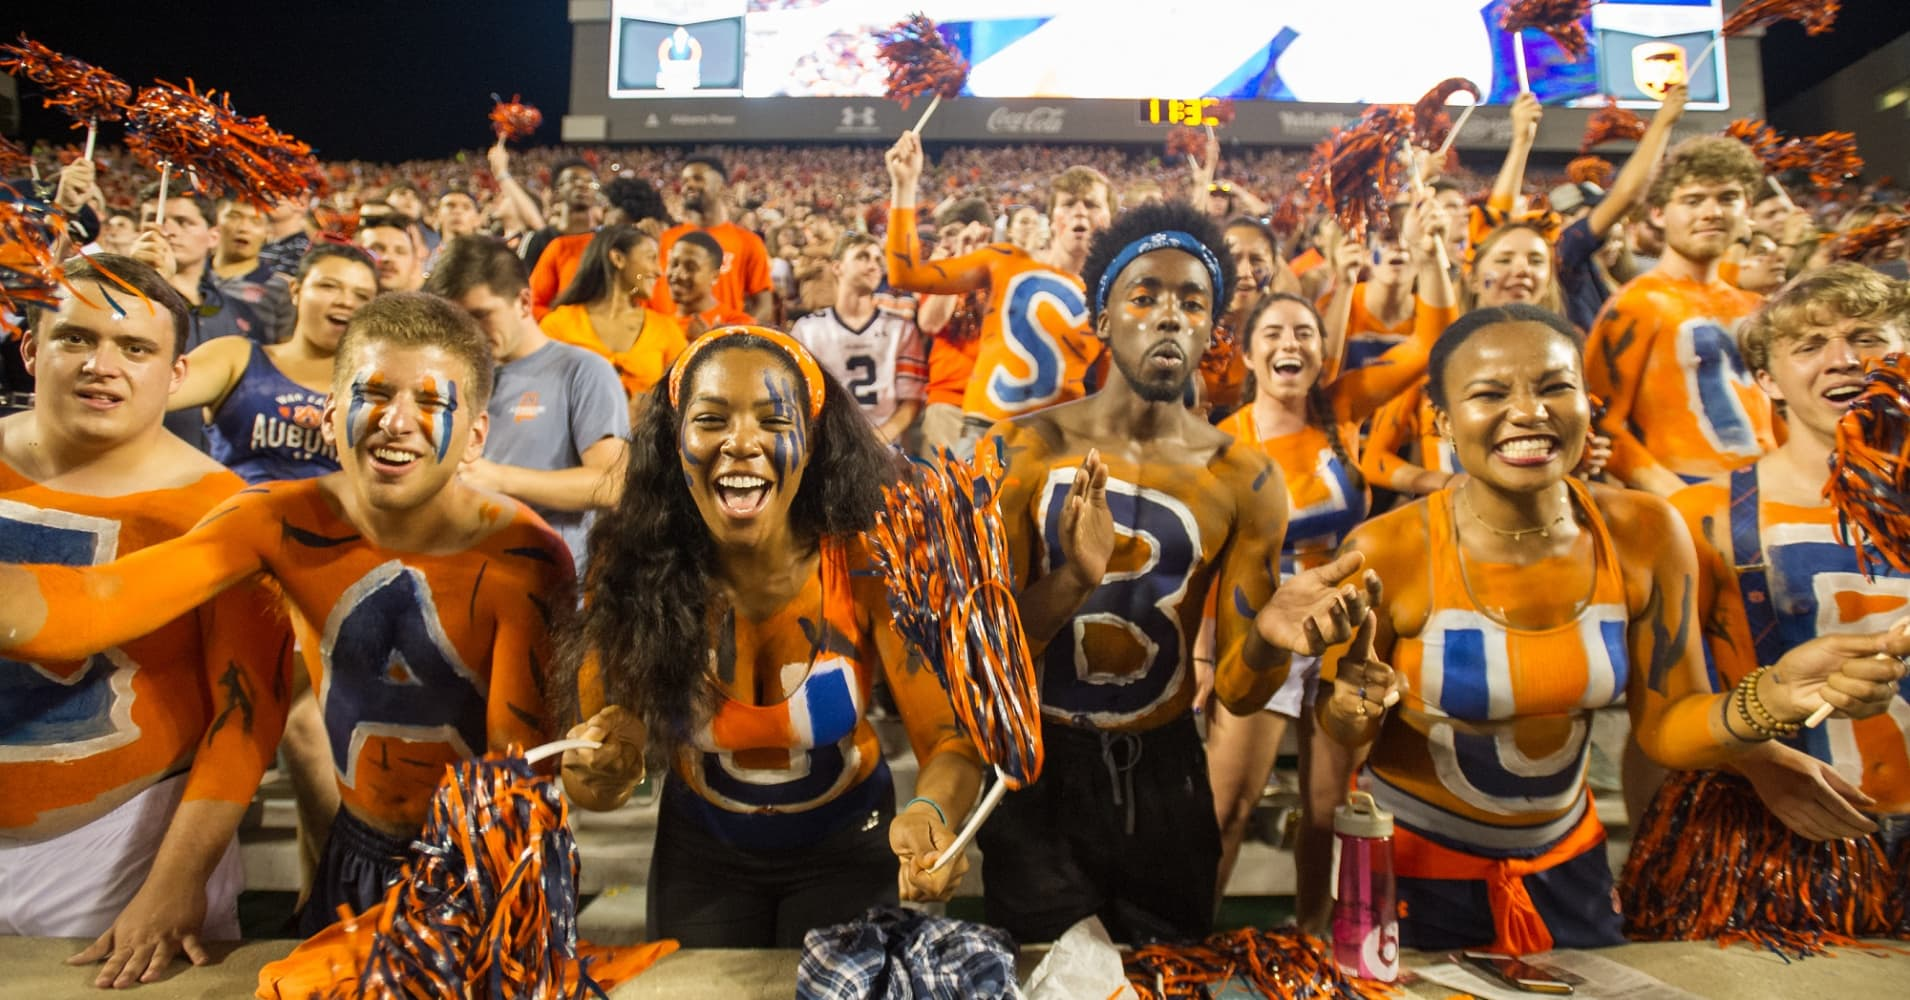 Fans of the Auburn Tigers cheer for their team during their game against the Alabama State Hornets at Jordan-Hare Stadium on September 8, 2018 in Auburn, Alabama.